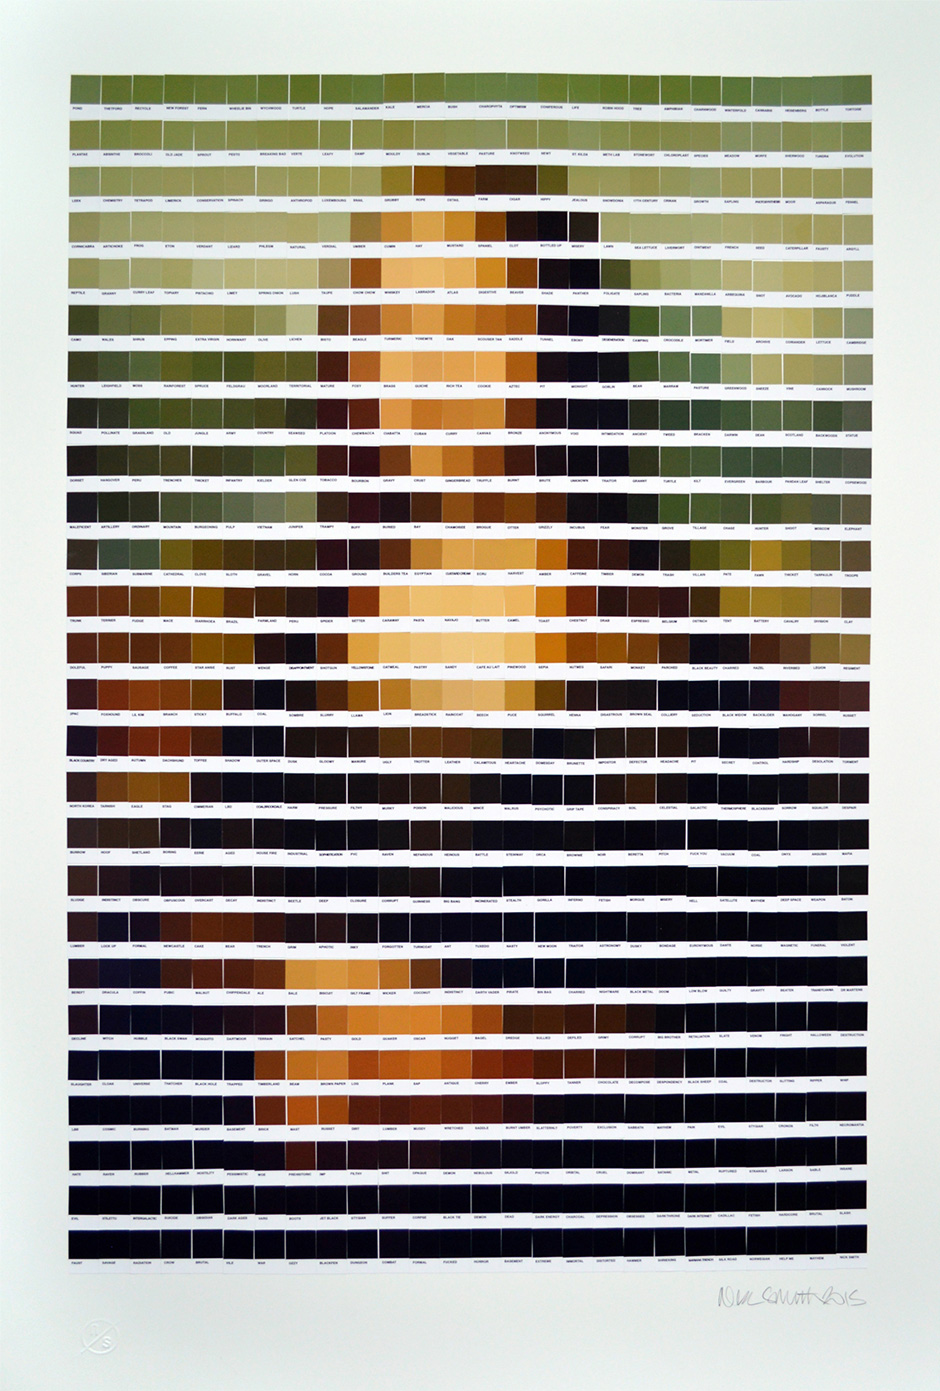 Nick Smith Pantone Swatch Mosaics